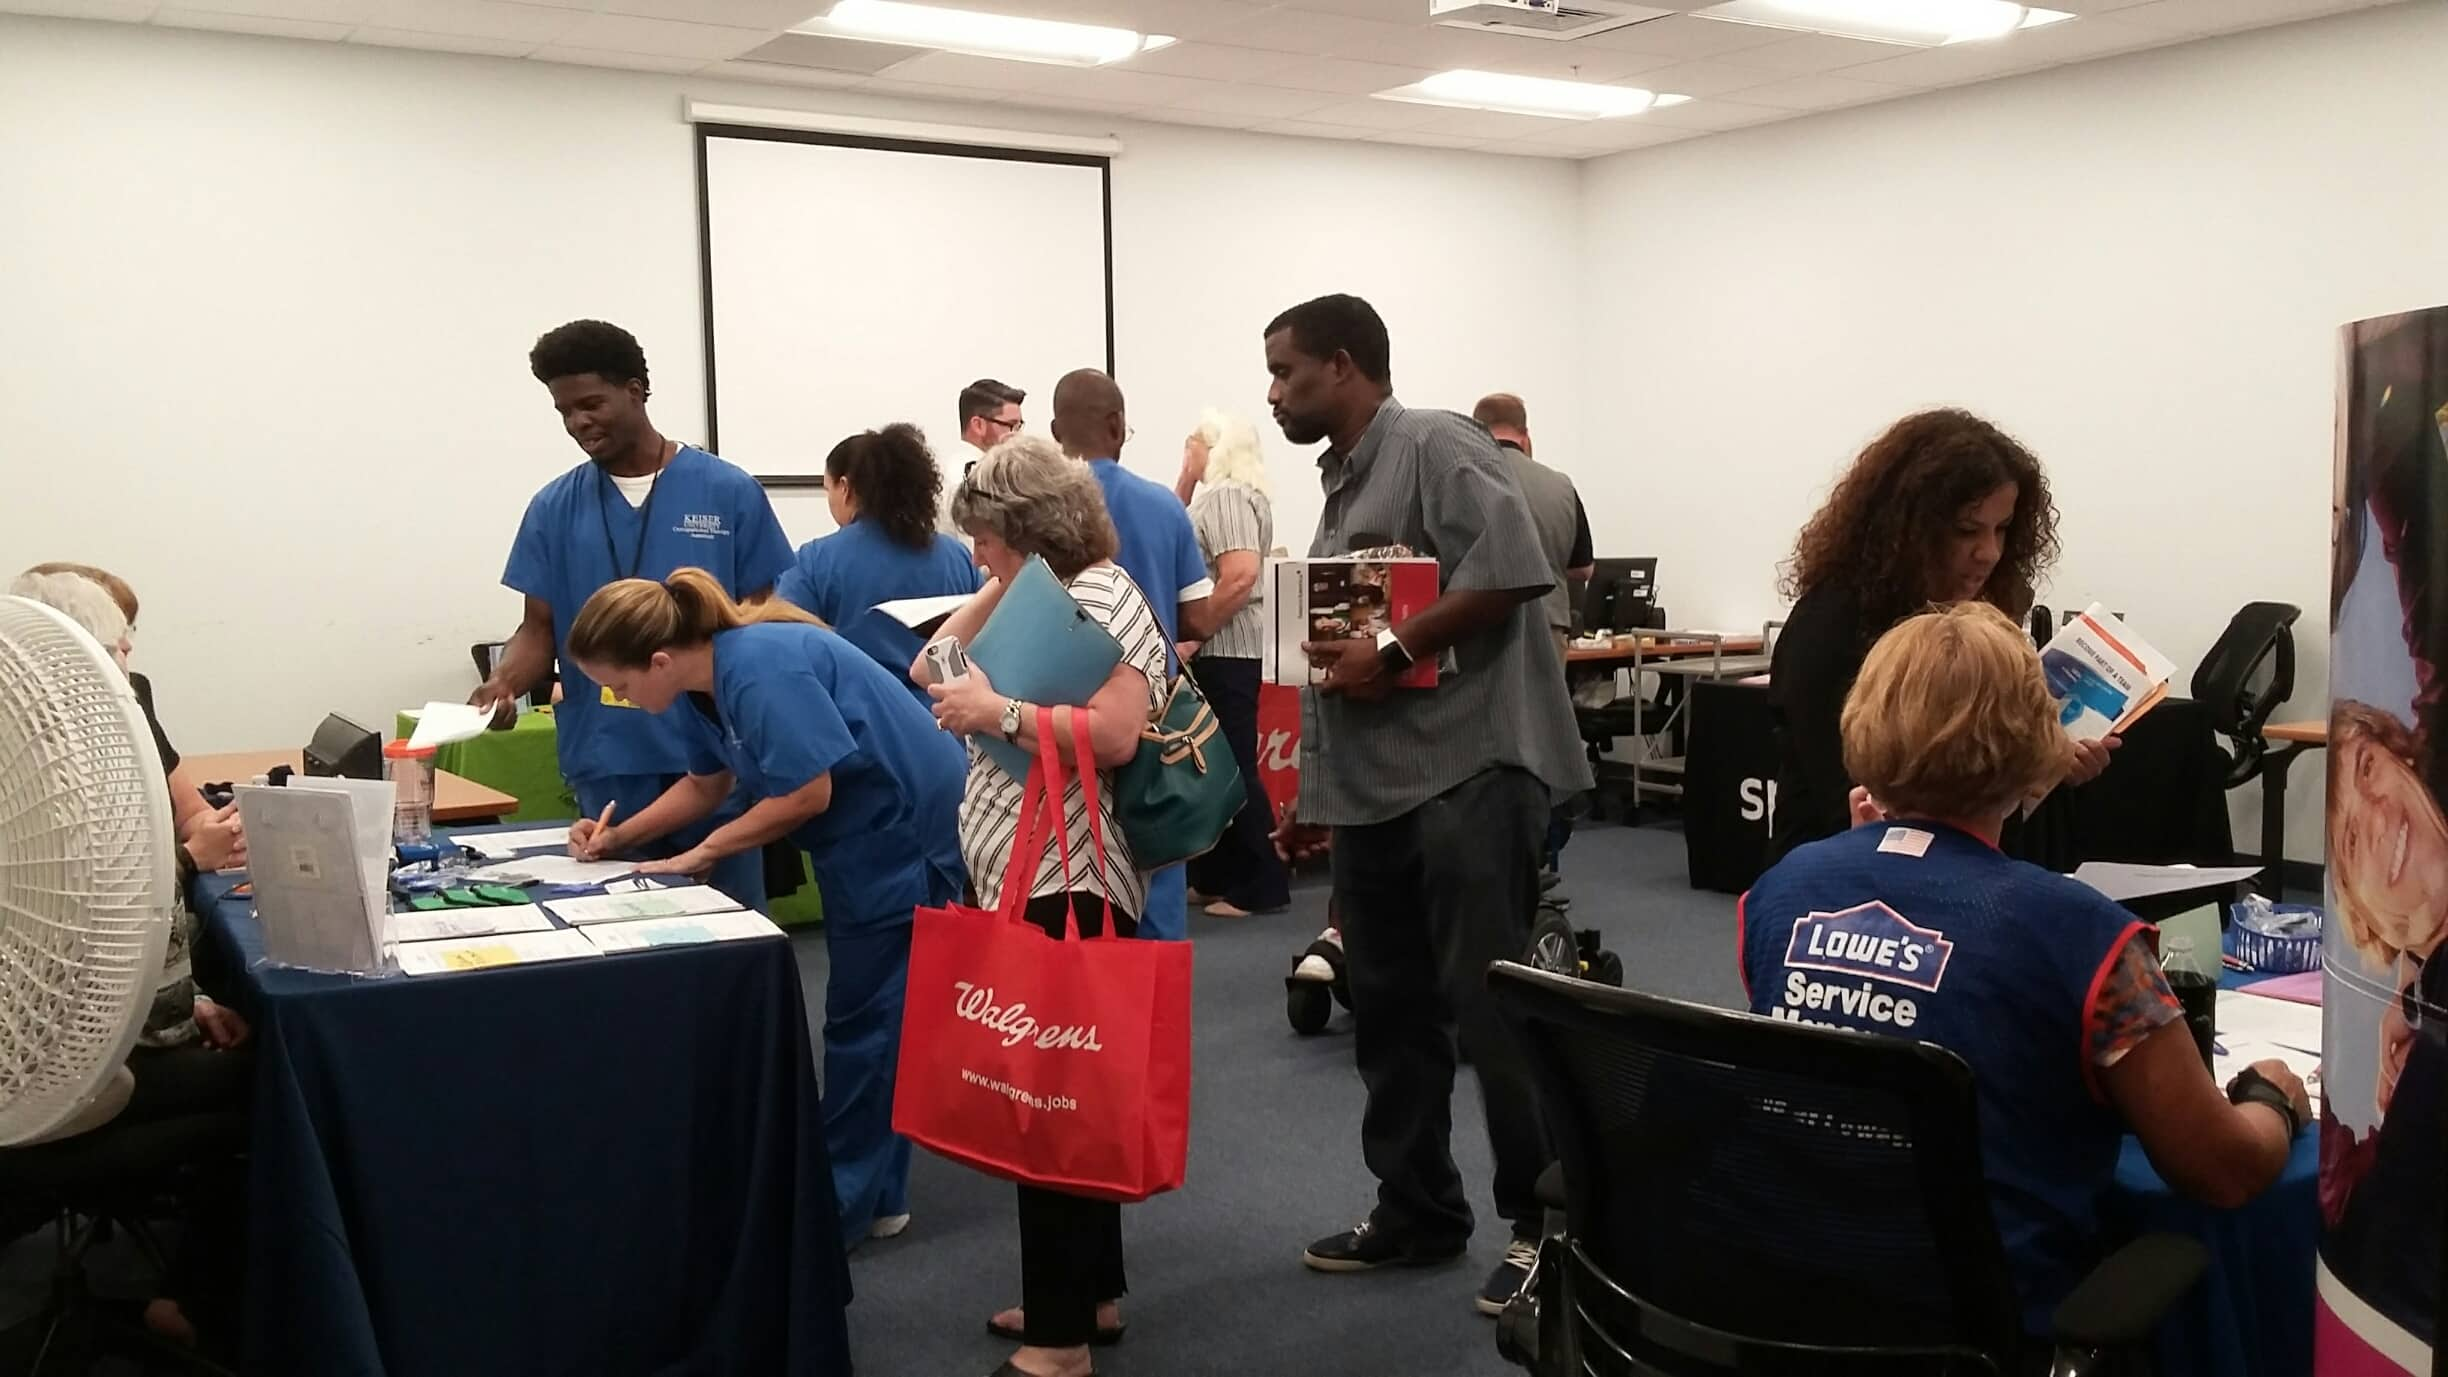 The Melbourne Campus Holds a Successful Job Fair